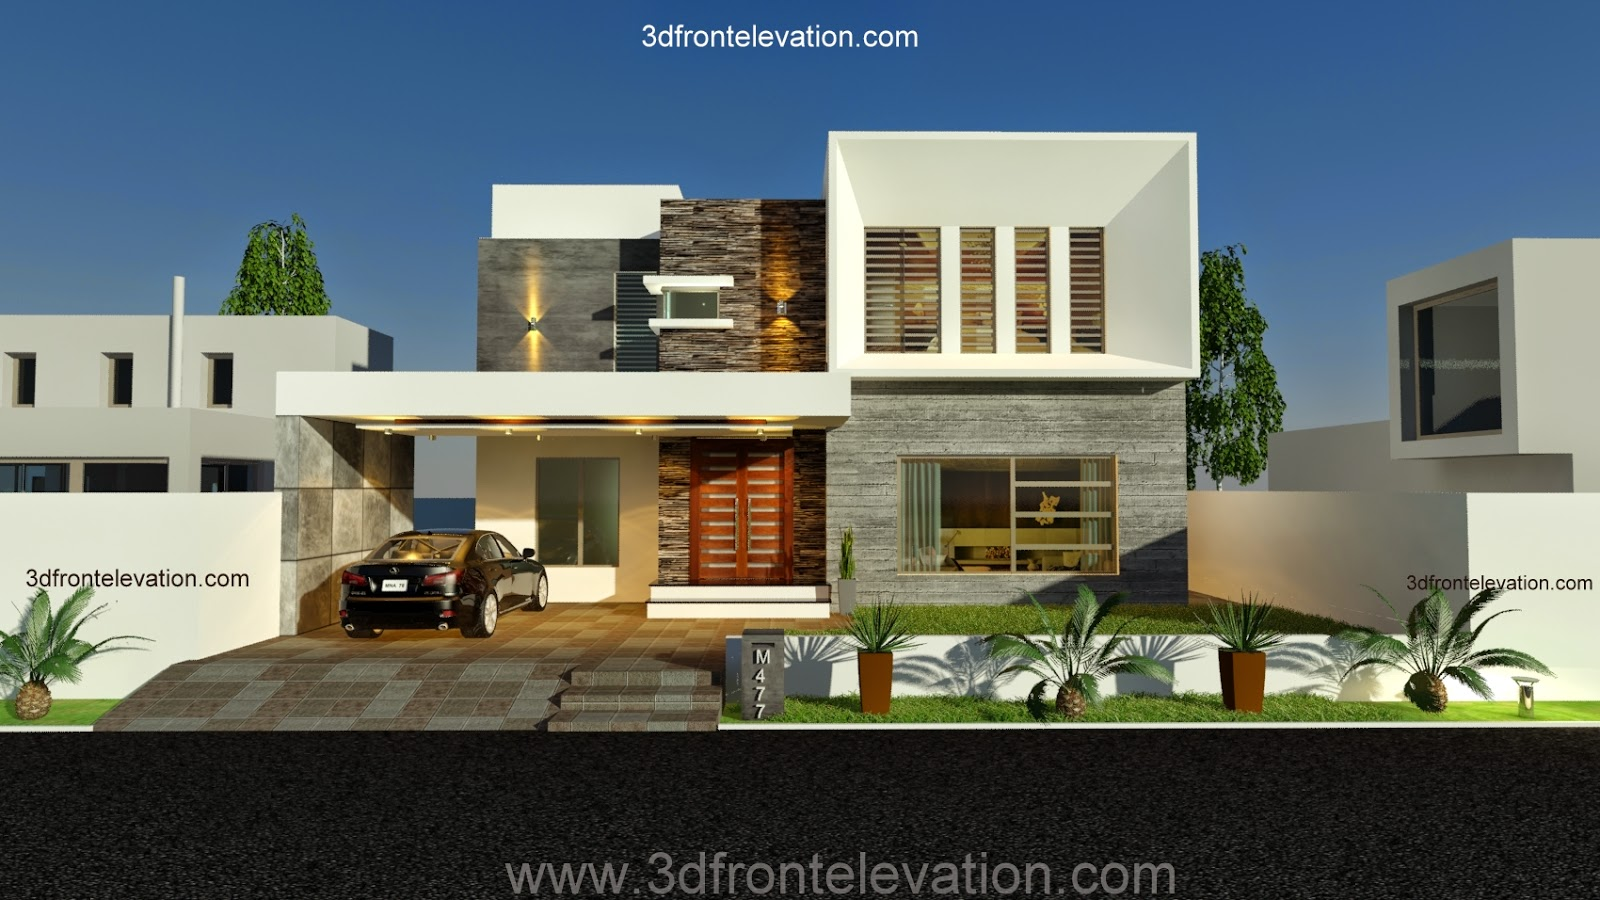 Simple modern house designs 2014 for Modern desig